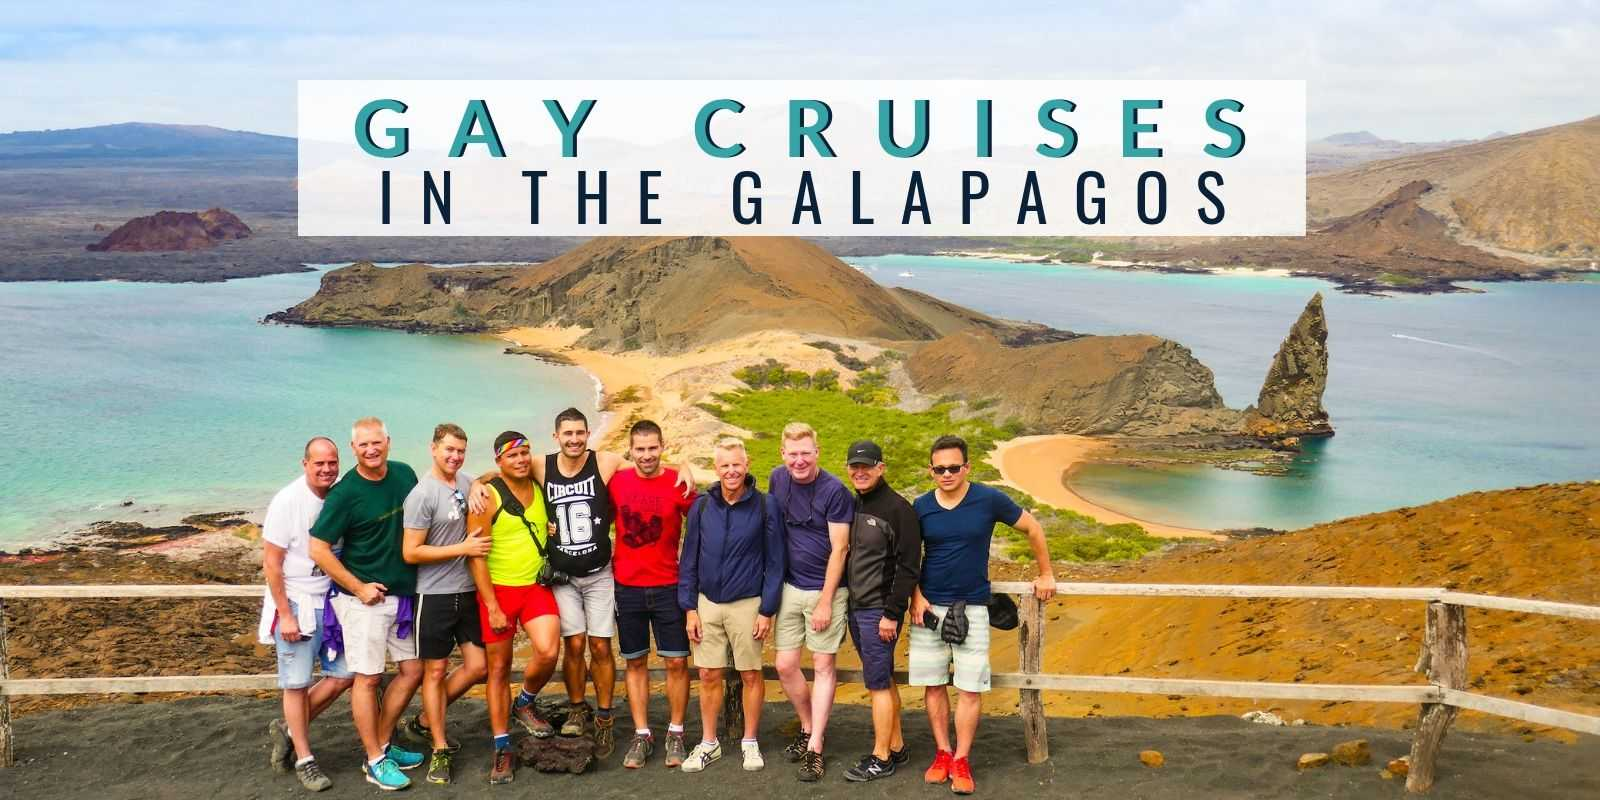 Find out the best gay cruises to explore the Galapagos Islands